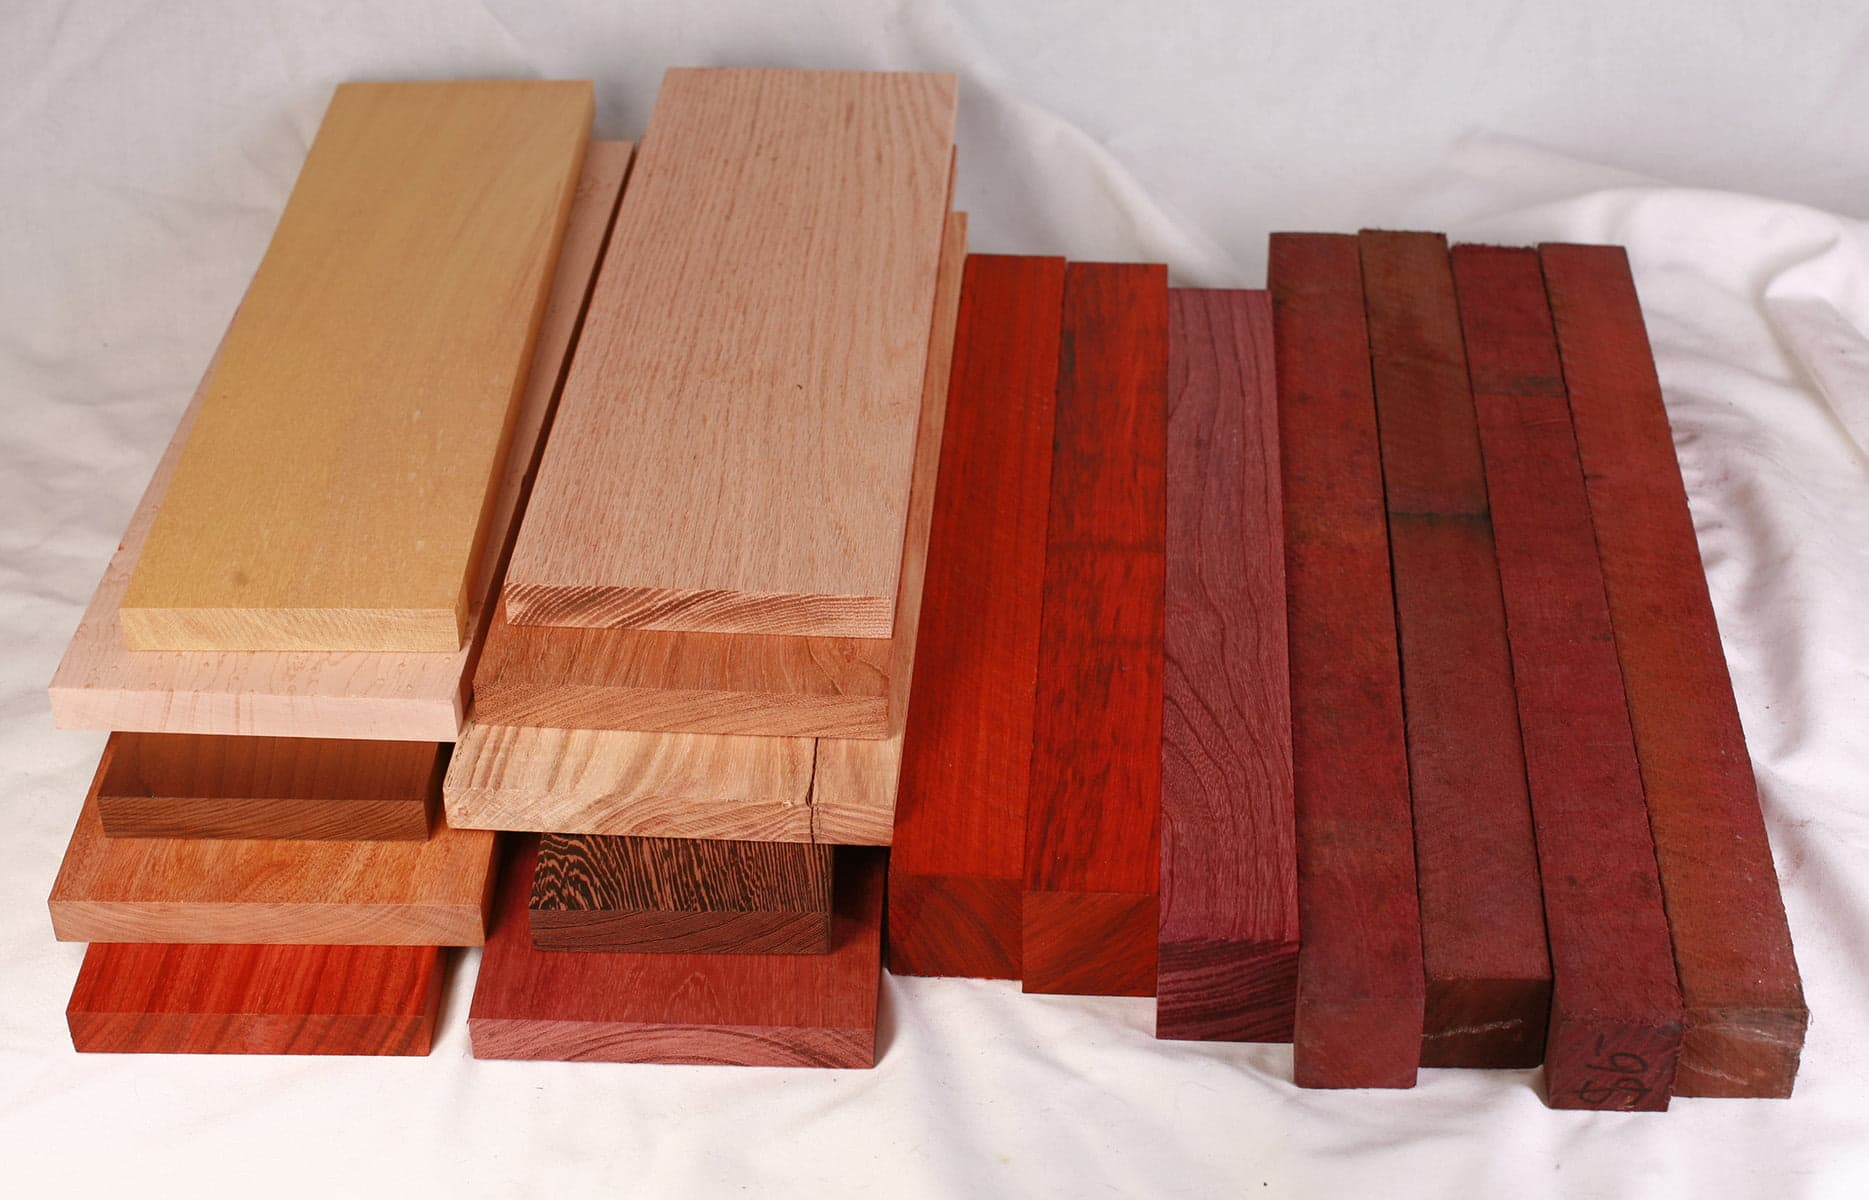 A stack of brightly coloured wood boards